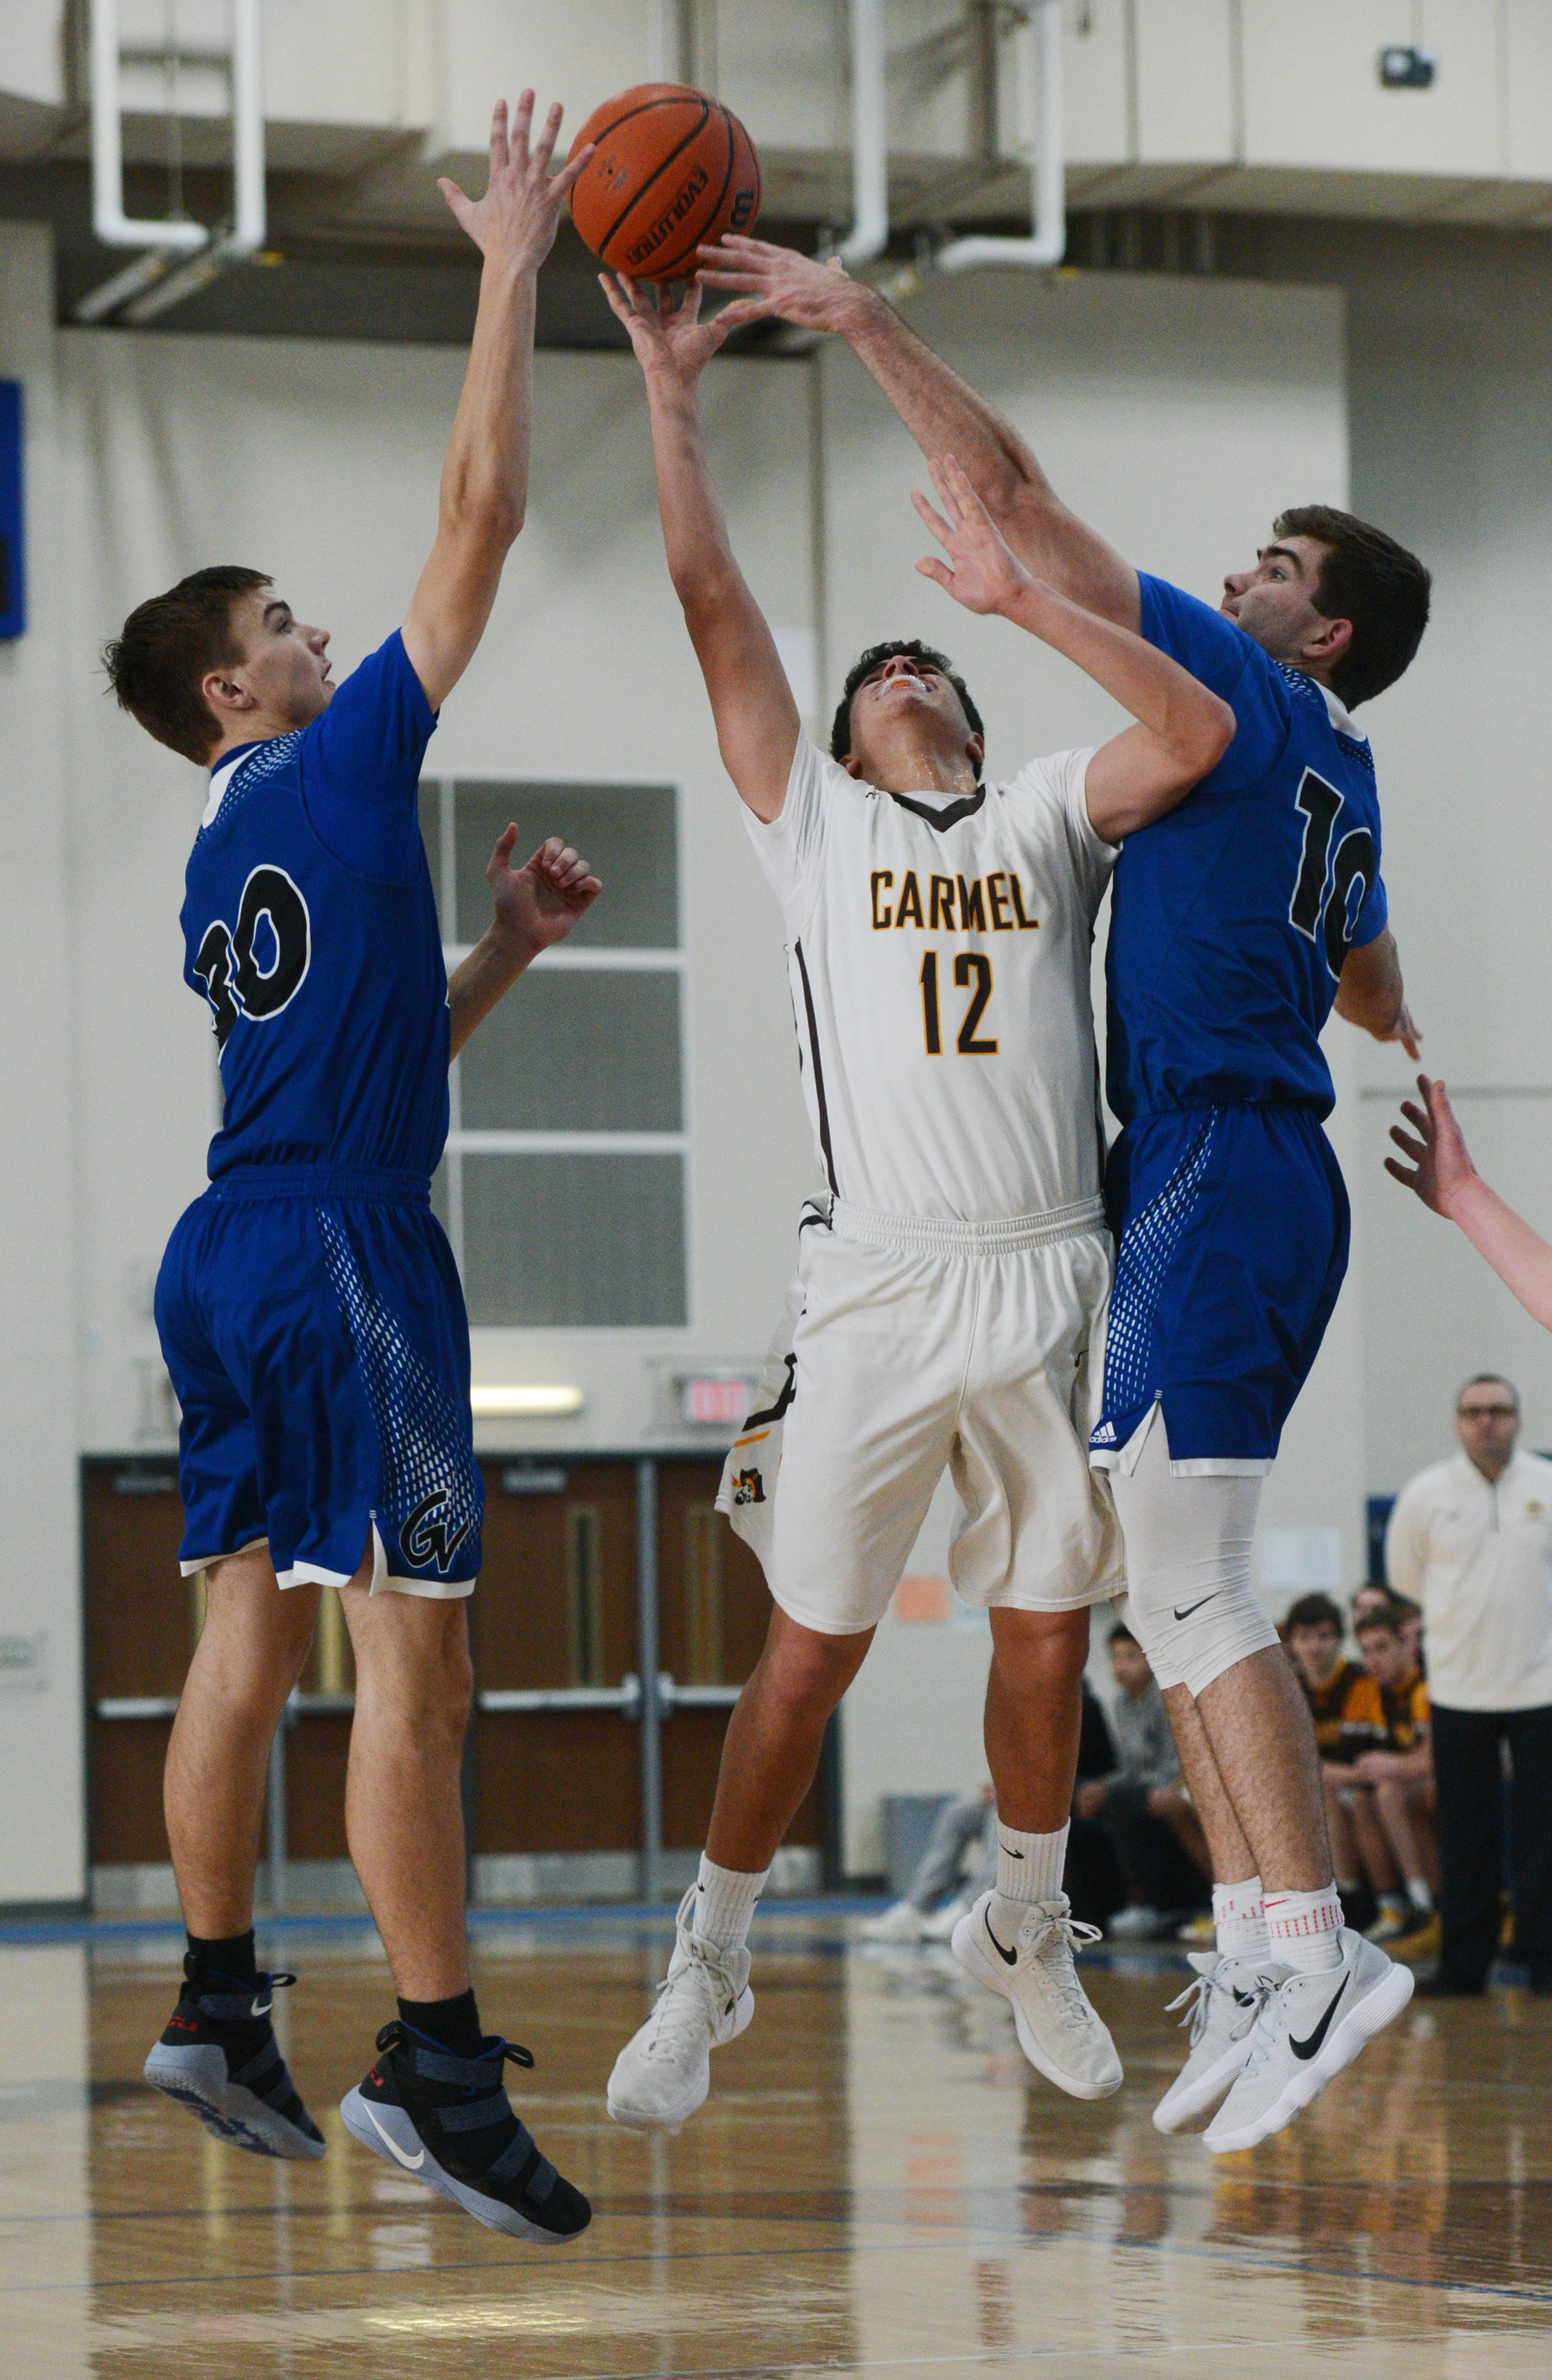 Carmel's Evan Myers manages to release a shot between the tight defense of Geneva's Joshua Preston, left, and Jack Hood during the Lake Zurich Martin Luther King Classic on Saturday.